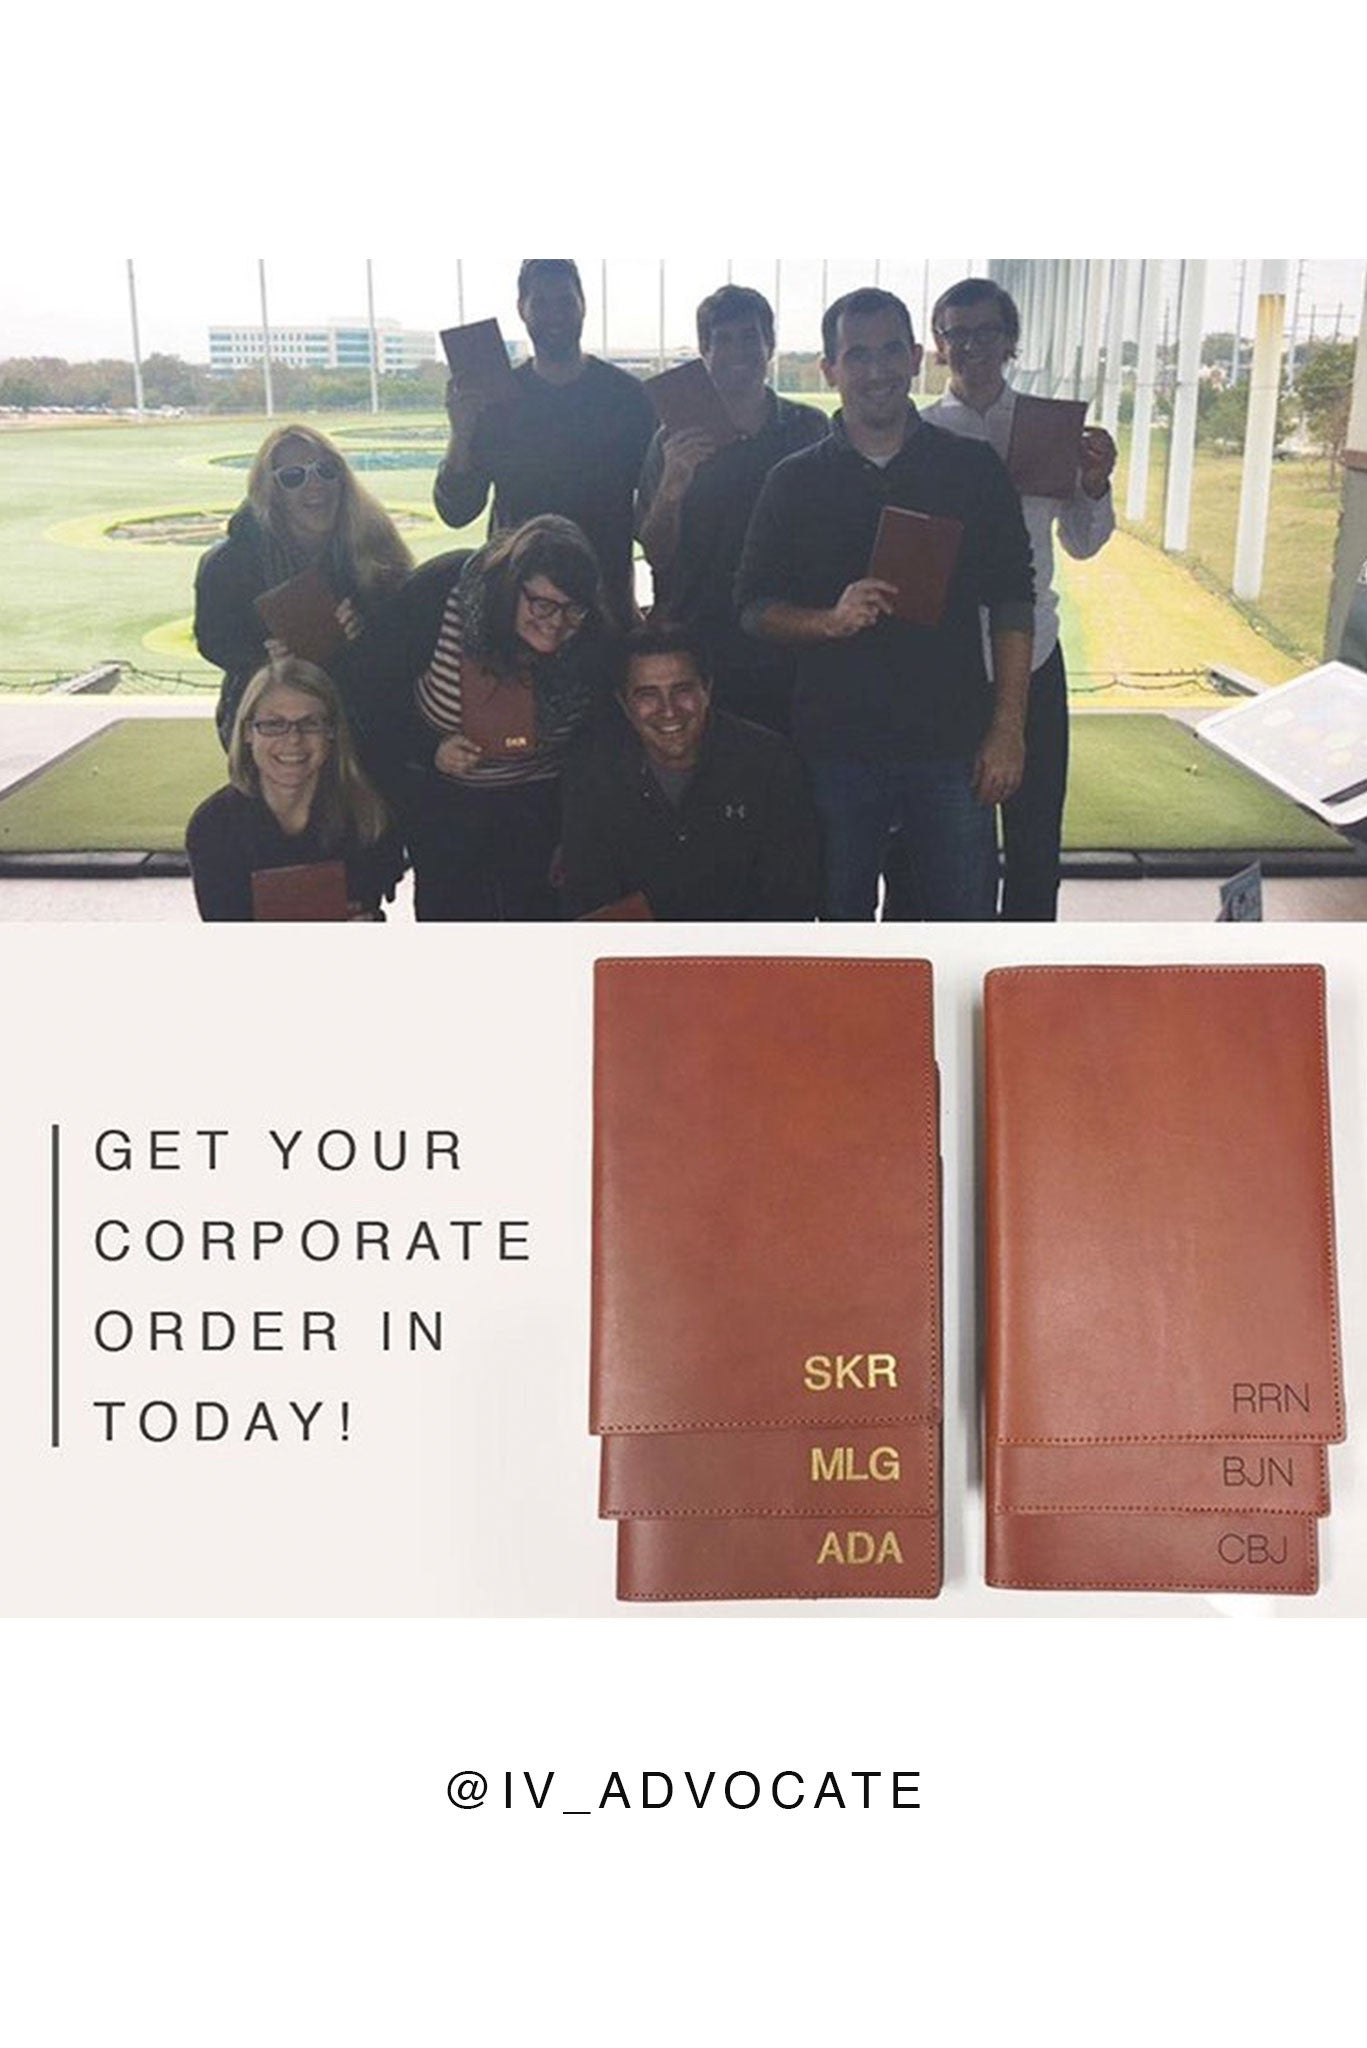 FOTO | Cognac Leather Journal - refillable genuine leather journal cover can be personalized with gold foil initials, a monogram or business logo making it the perfect personalized gift.